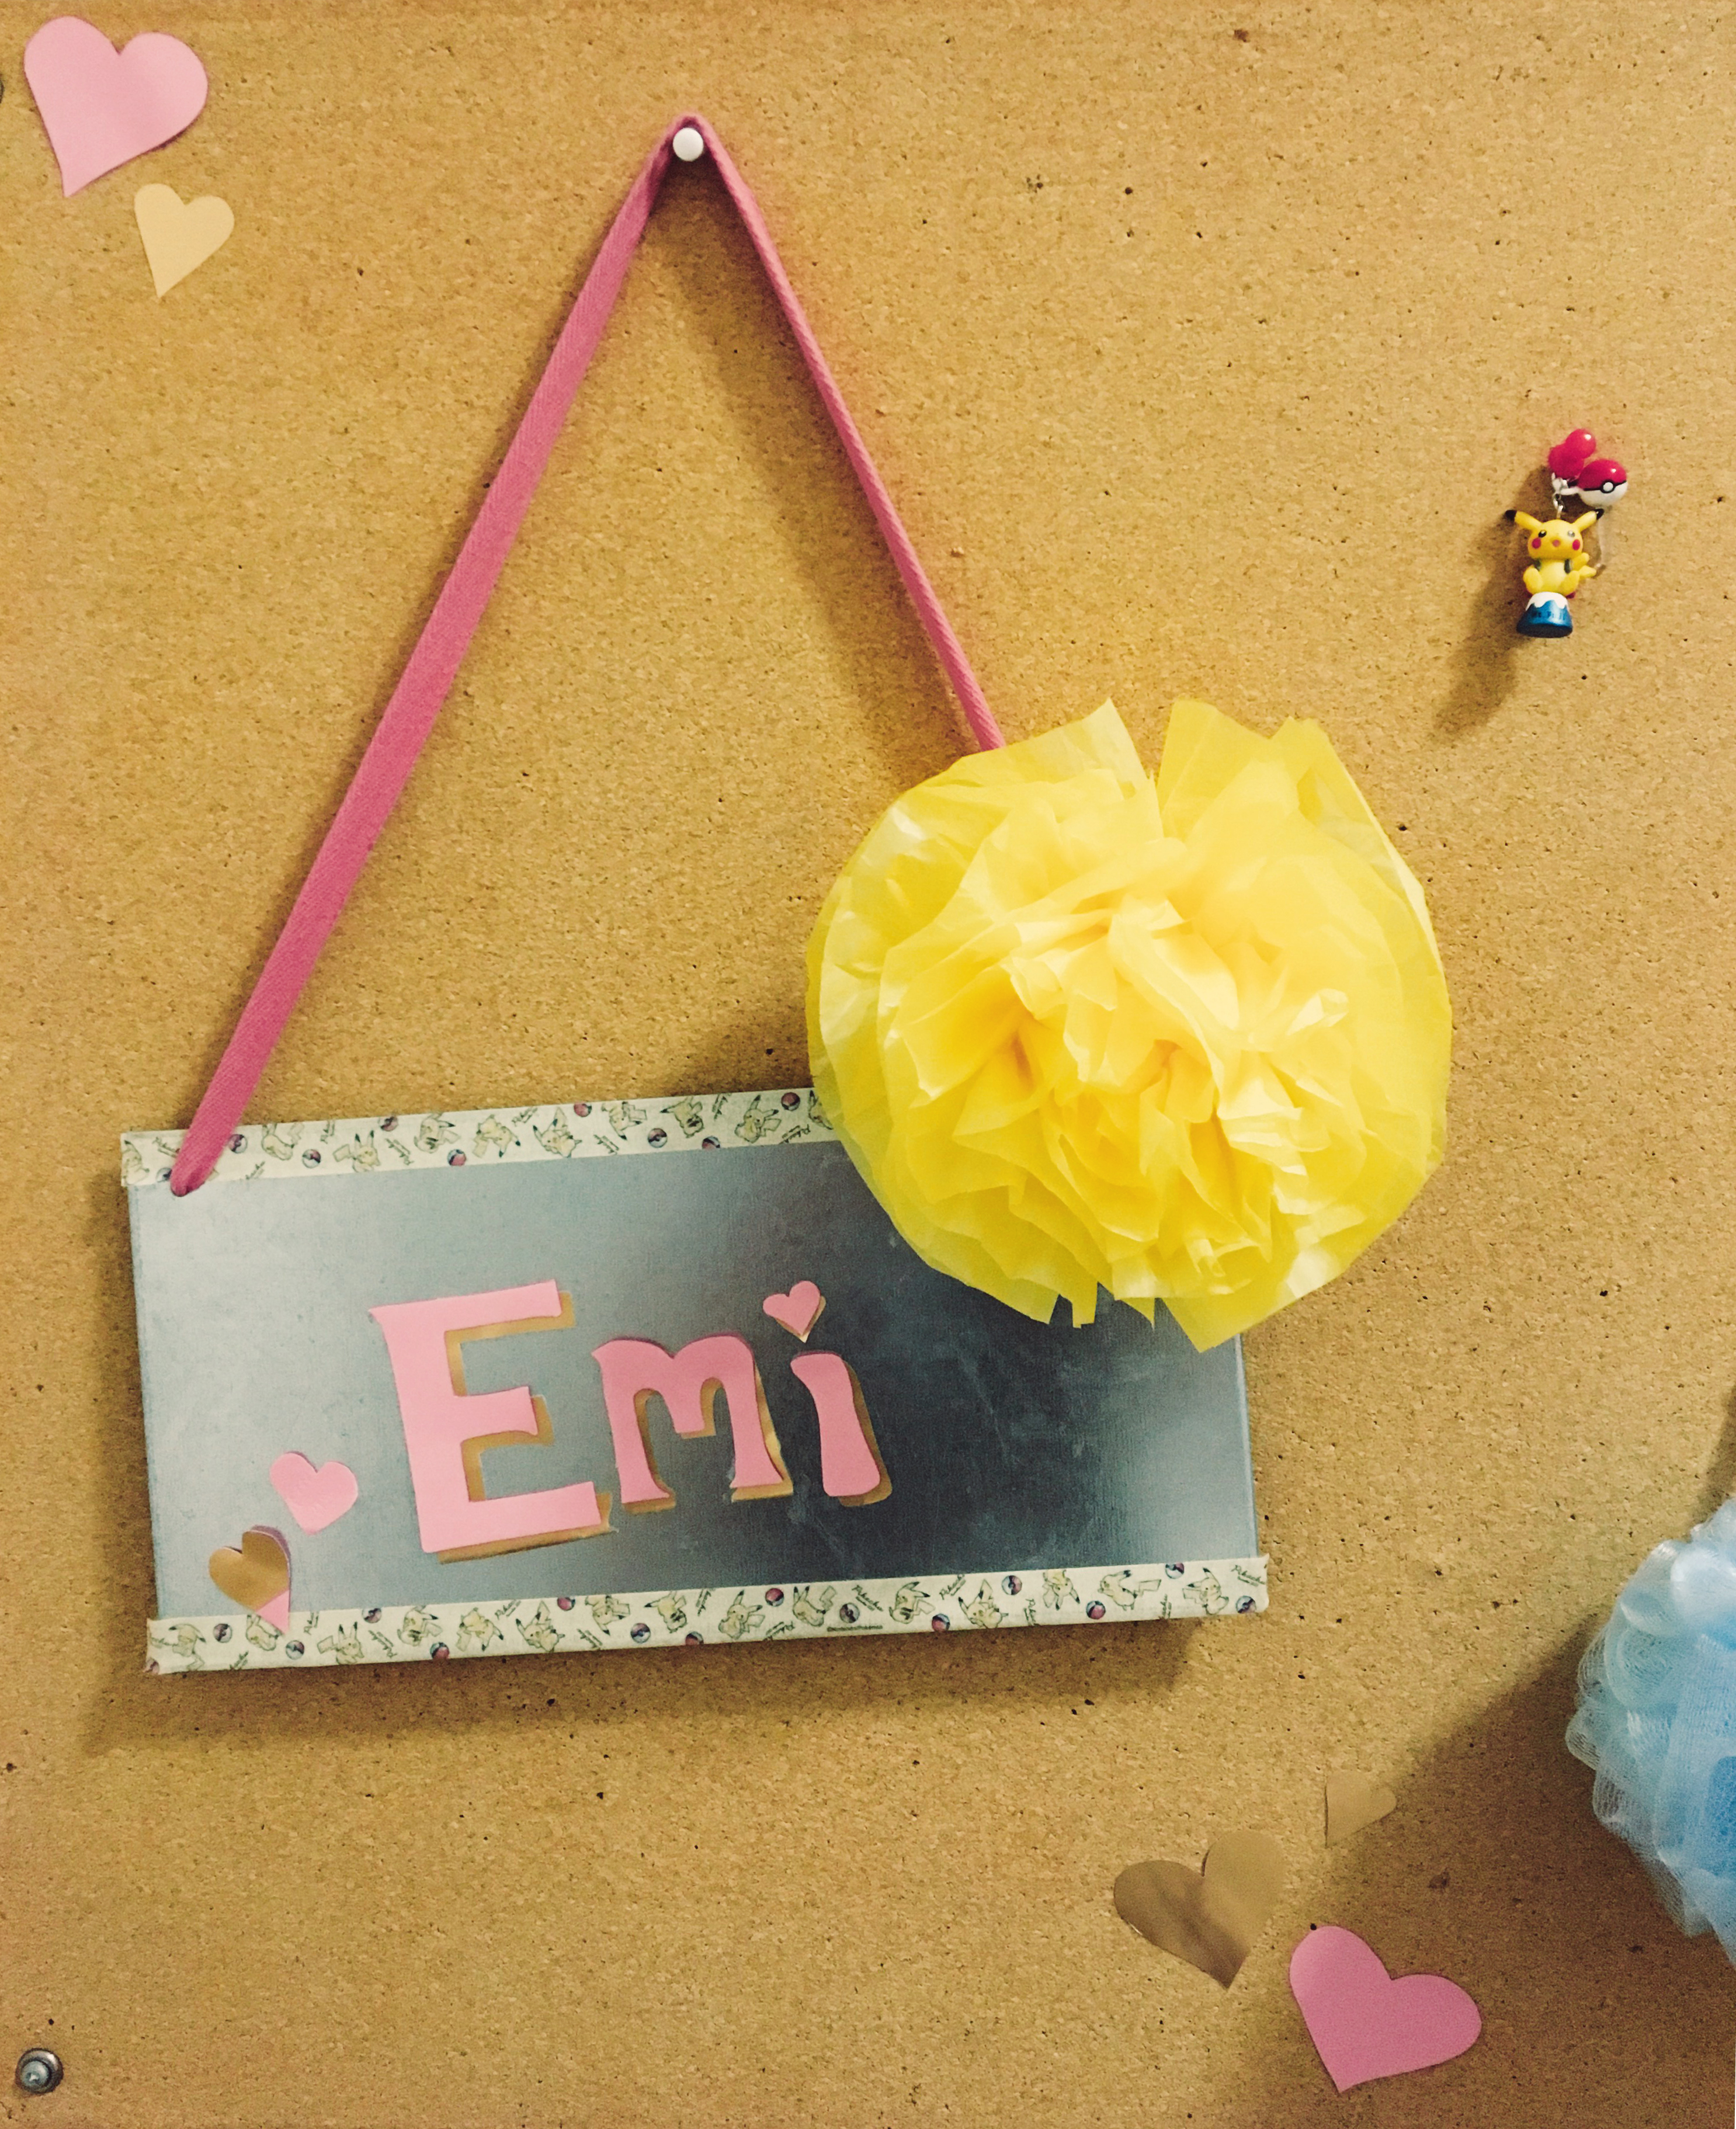 "A picture of Emi's dorm bulletin board, with a sign that says ""Emi"" and a paper flower."